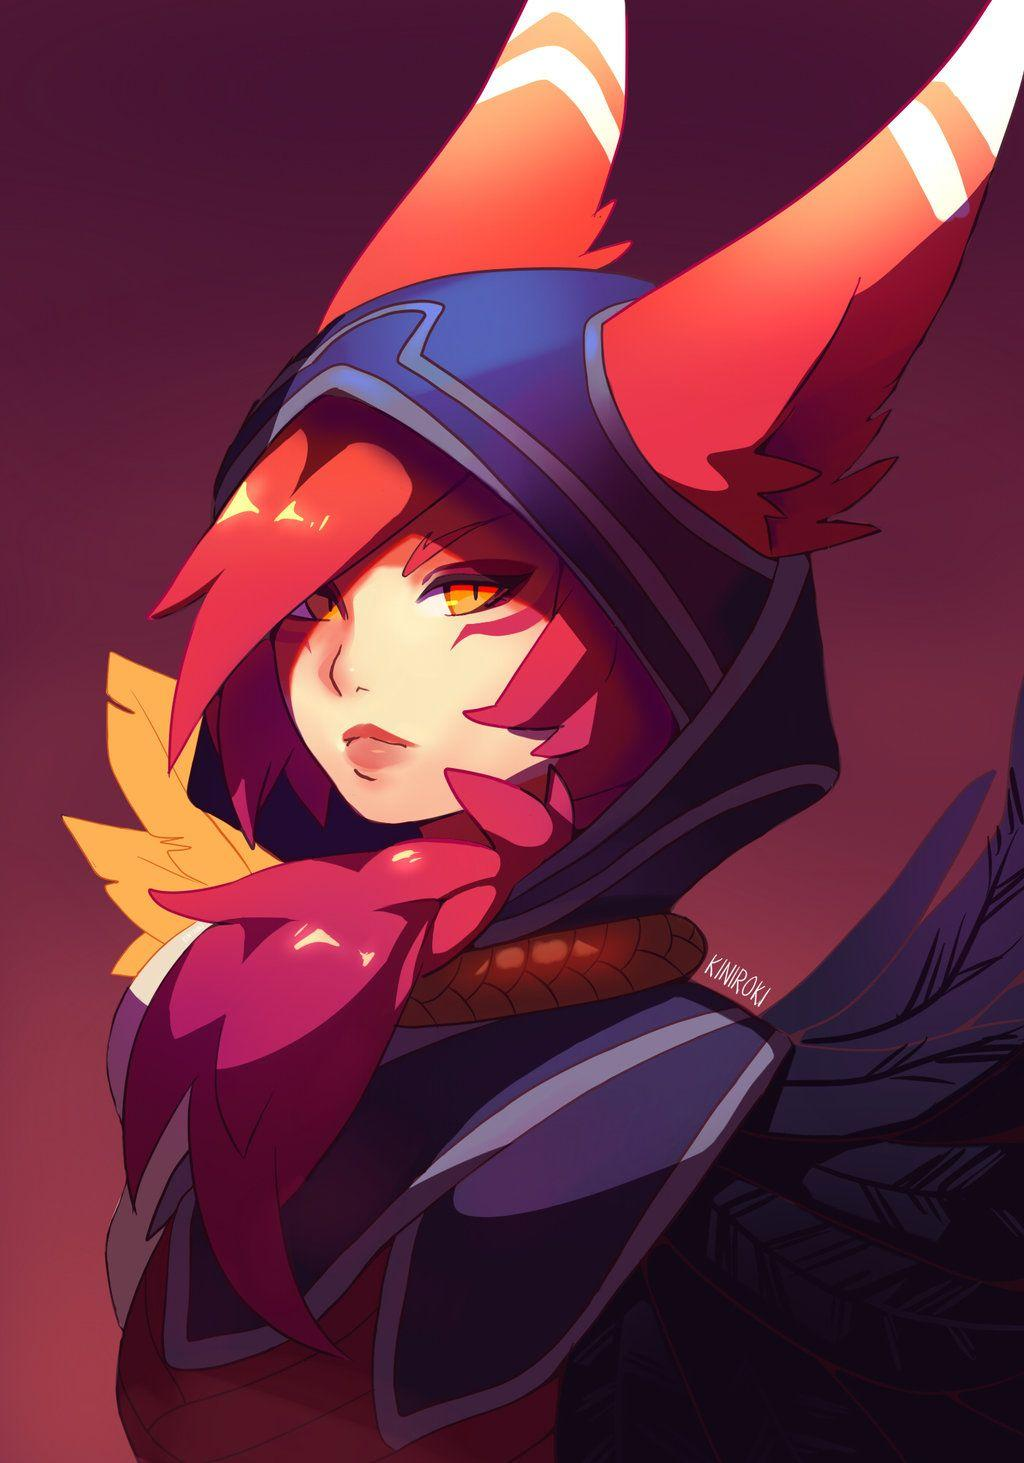 Xayah-The-Rebel-by-Kiniroki-wallpaper-wp4209700 - live wallpaper ...